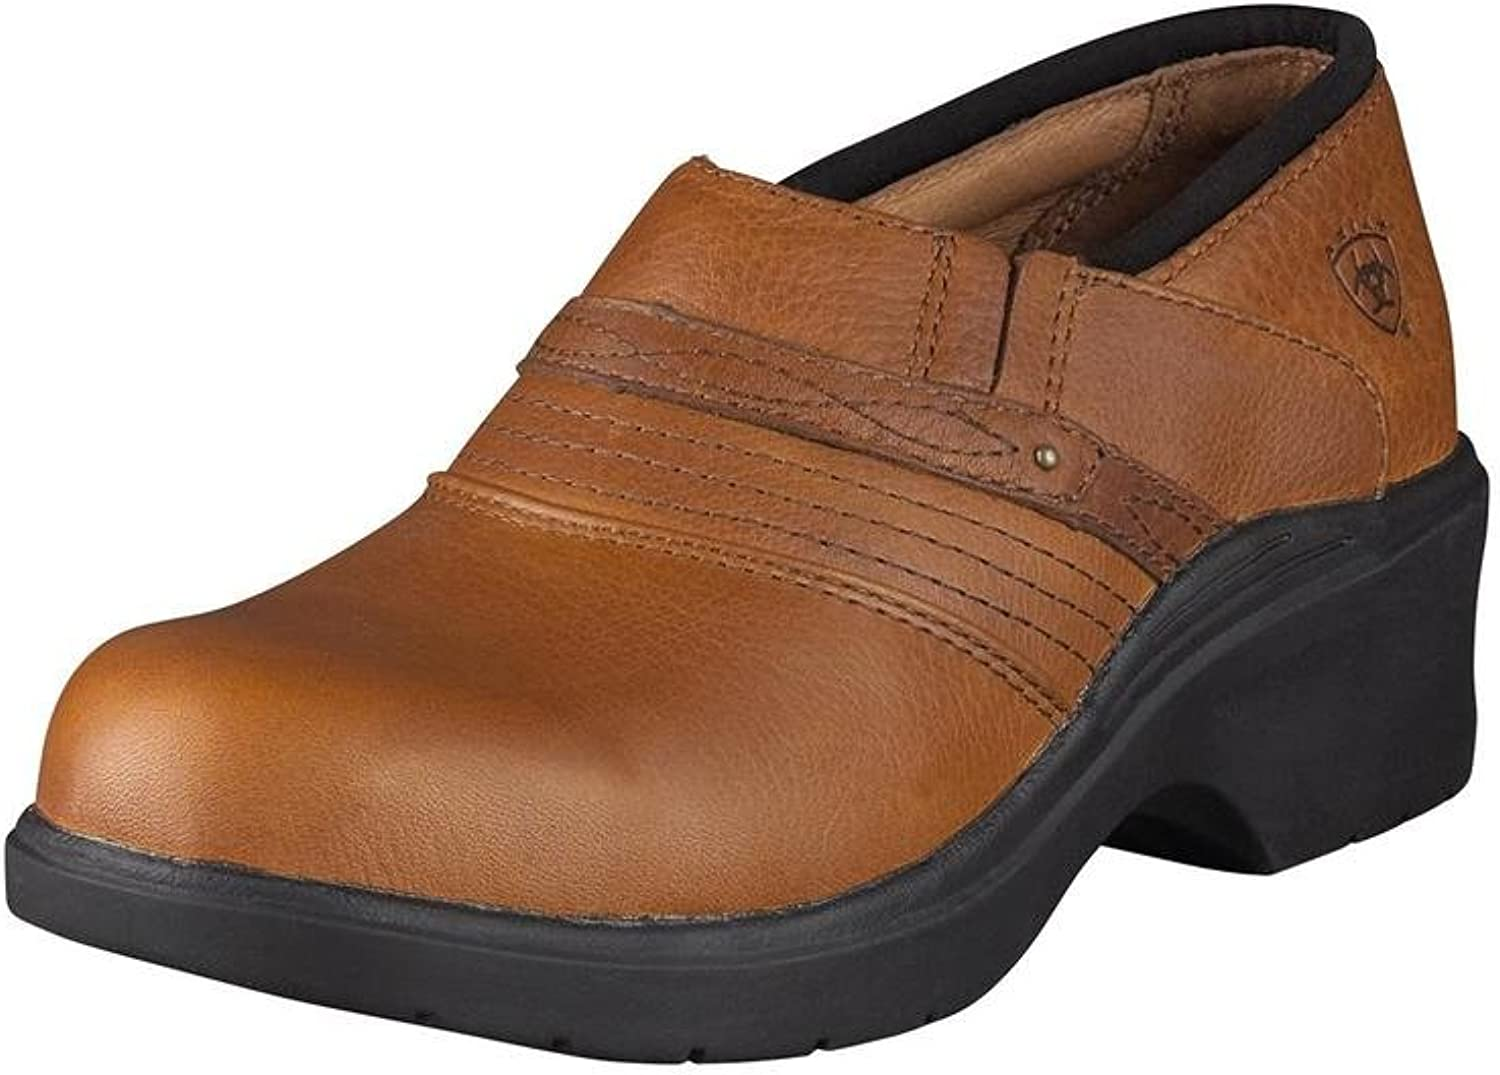 ARIAT Women's Safety Toe Clog